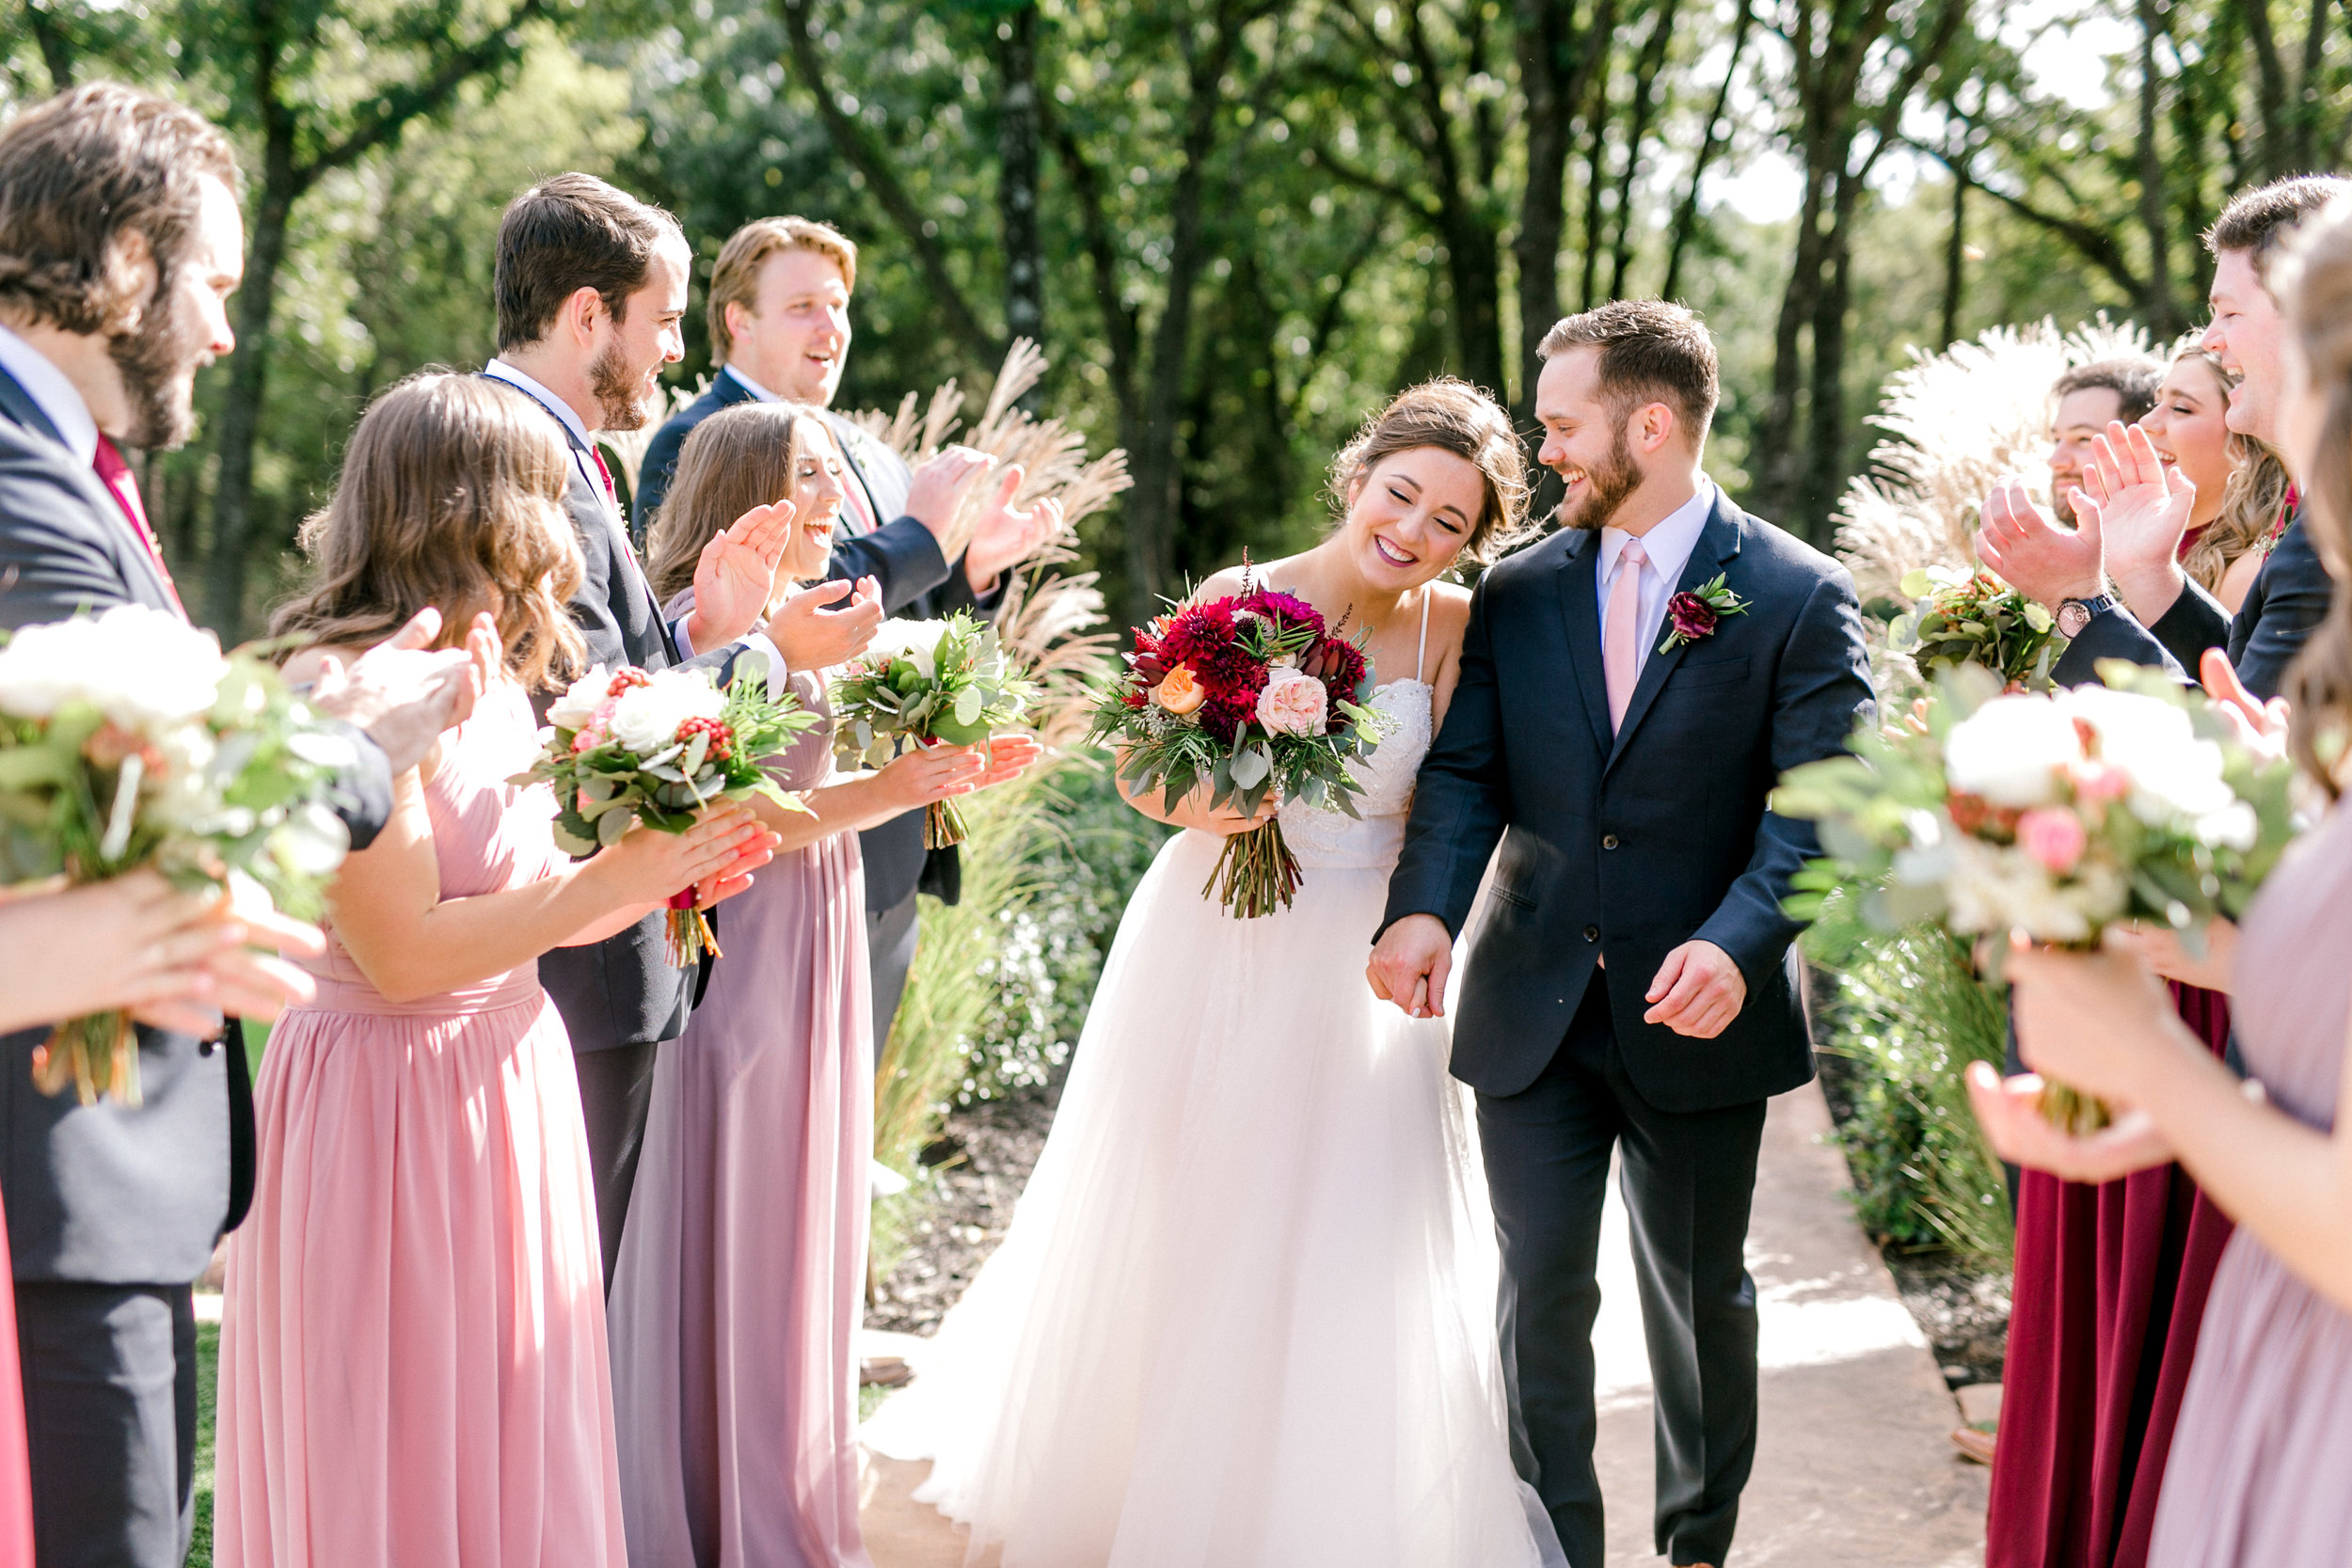 Natalie-and-Trent-Wedding-Day-THE-SPRINGS-EVENT-VENUE-Norman-Oklahoma-by-Emily-Nicole-Photo-364.jpg